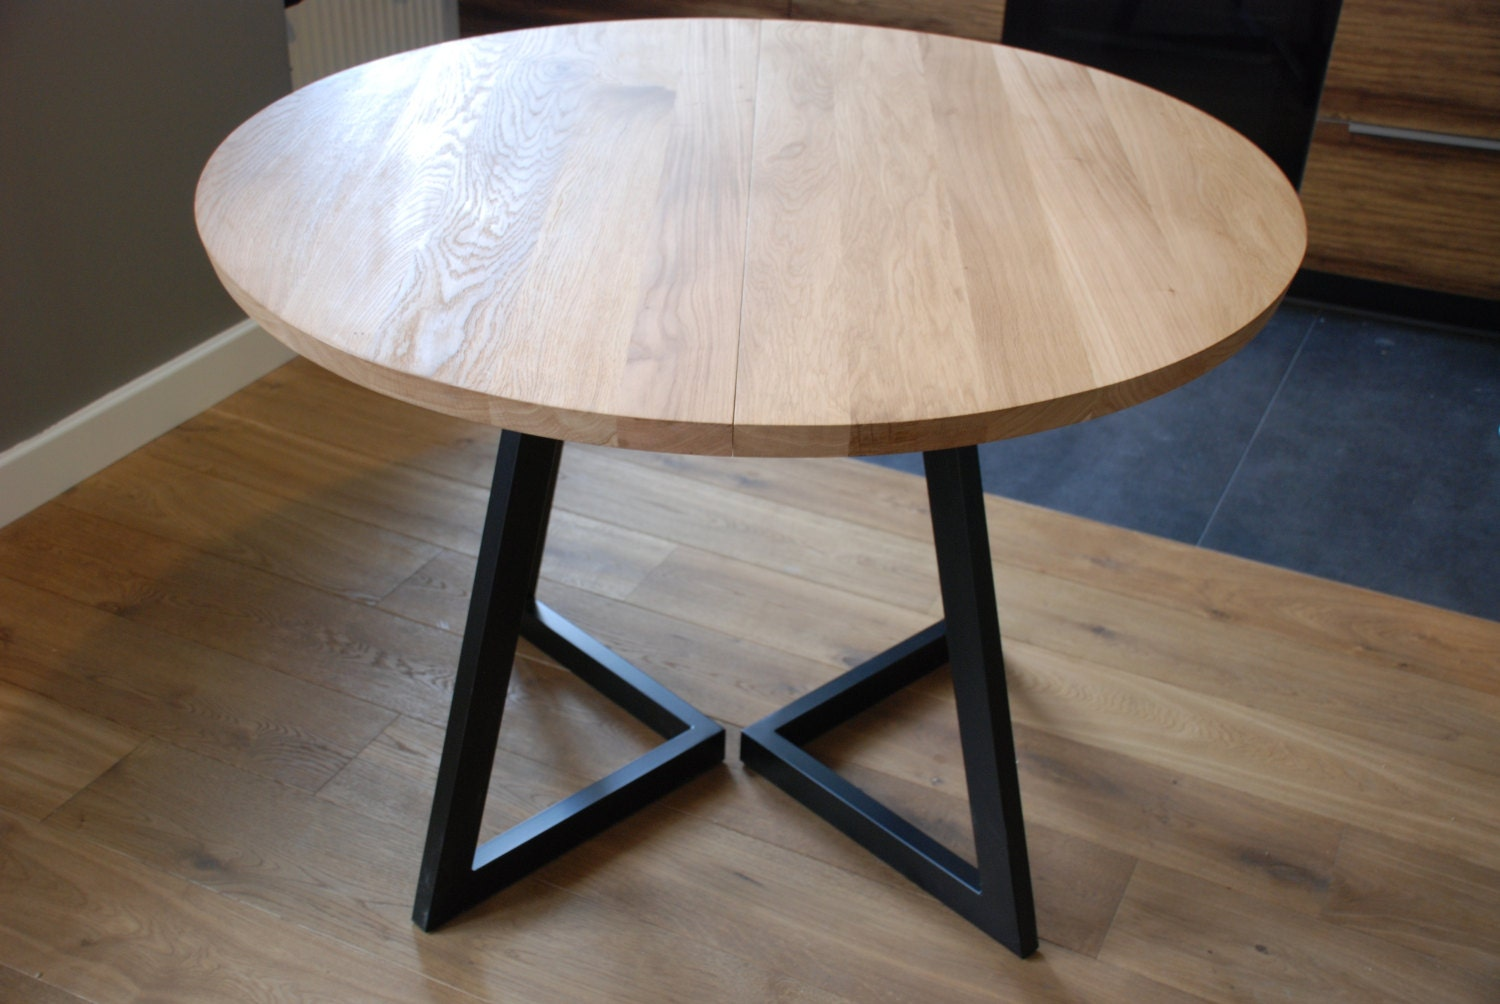 Bois et table ronde rallonges design moderne en acier for Table a manger ronde a rallonge